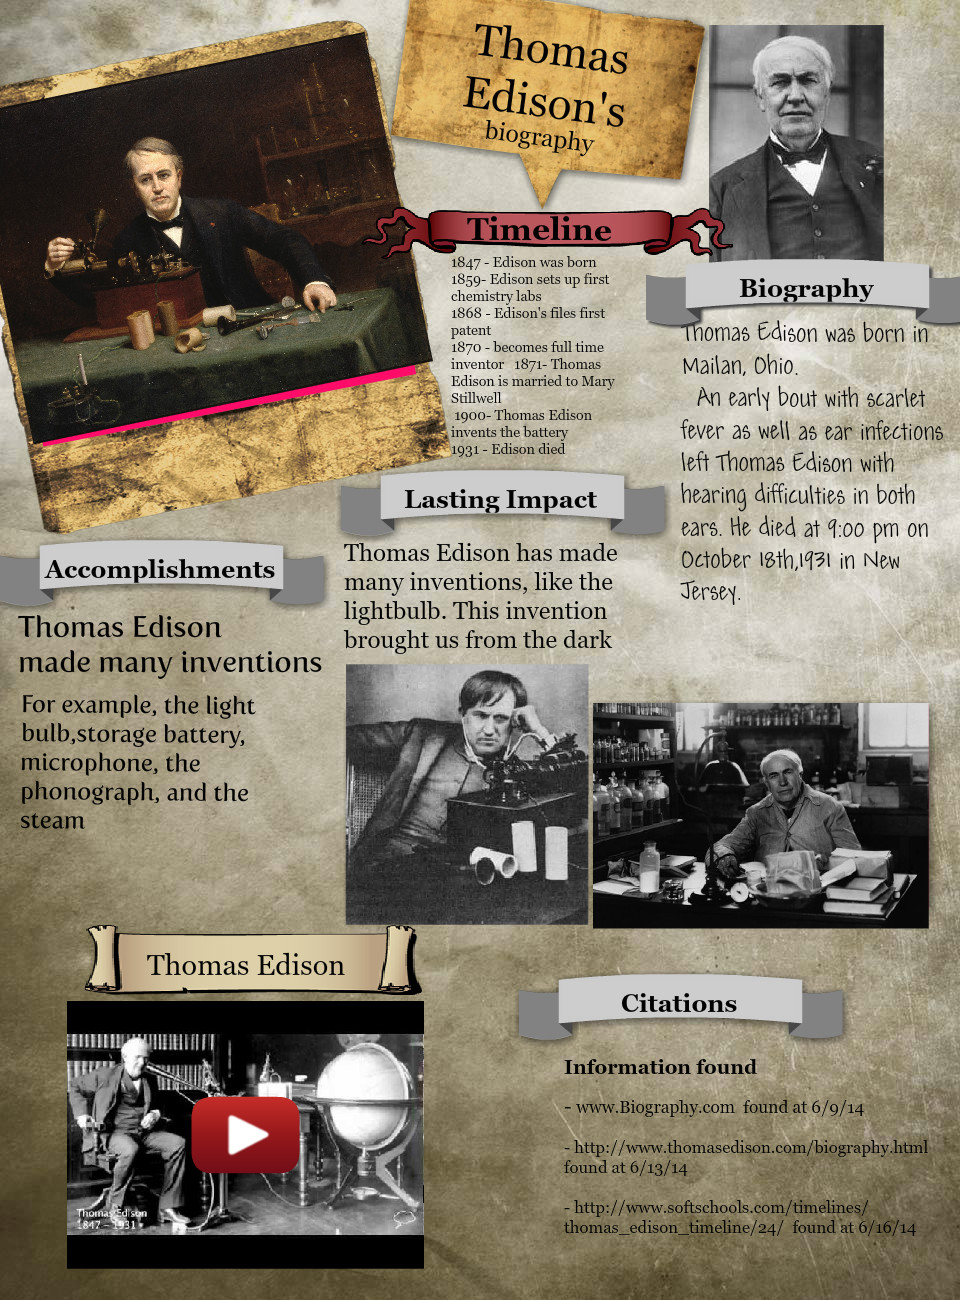 Thomas Edison's Biography